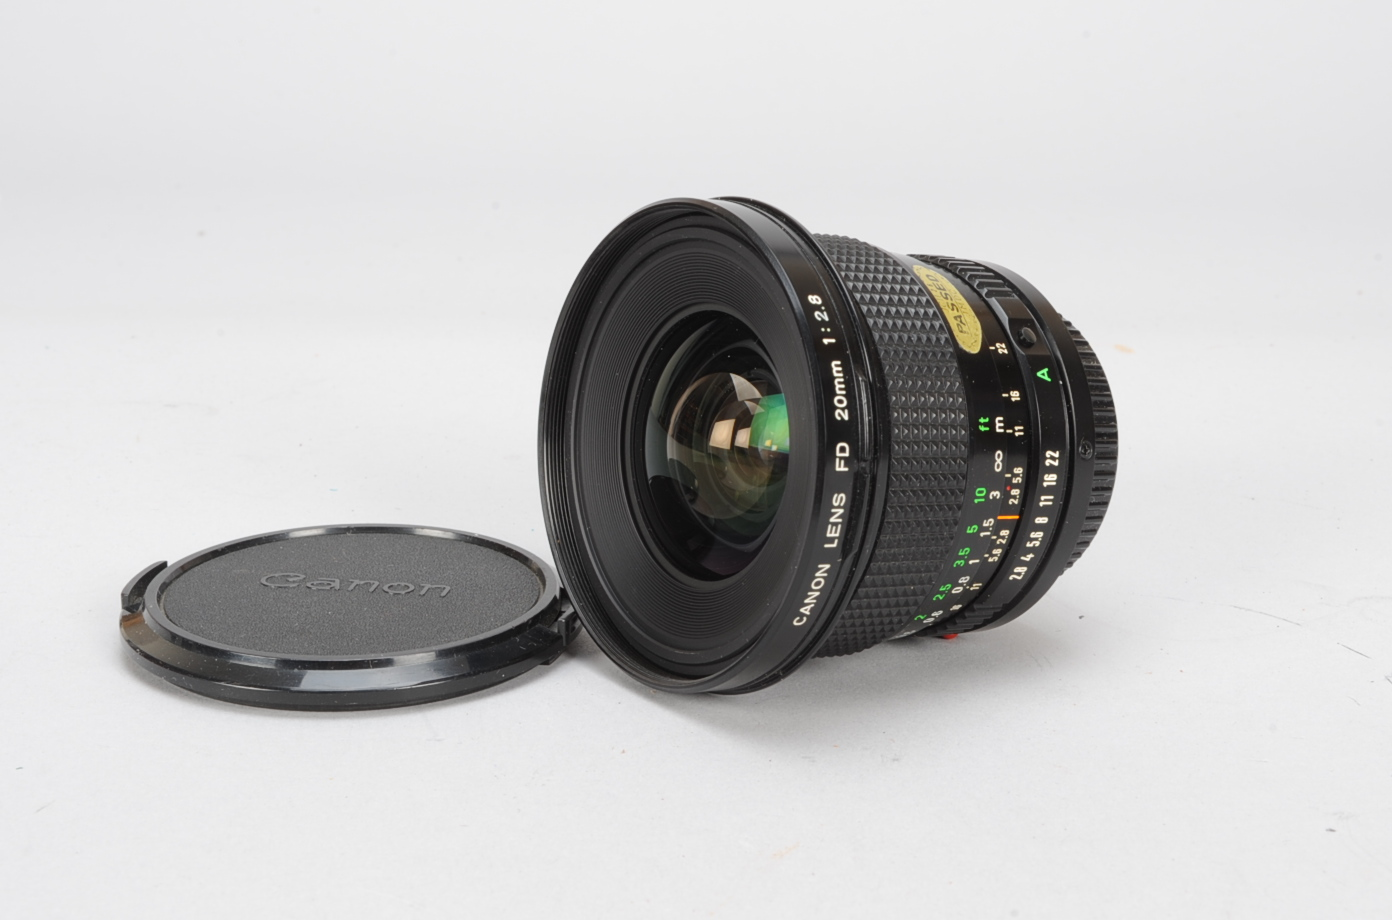 Lot 32 - A Canon FD 20mm f/2.8 Lens, serial no 26797, barrel G, elements G-VG, with front and rear caps